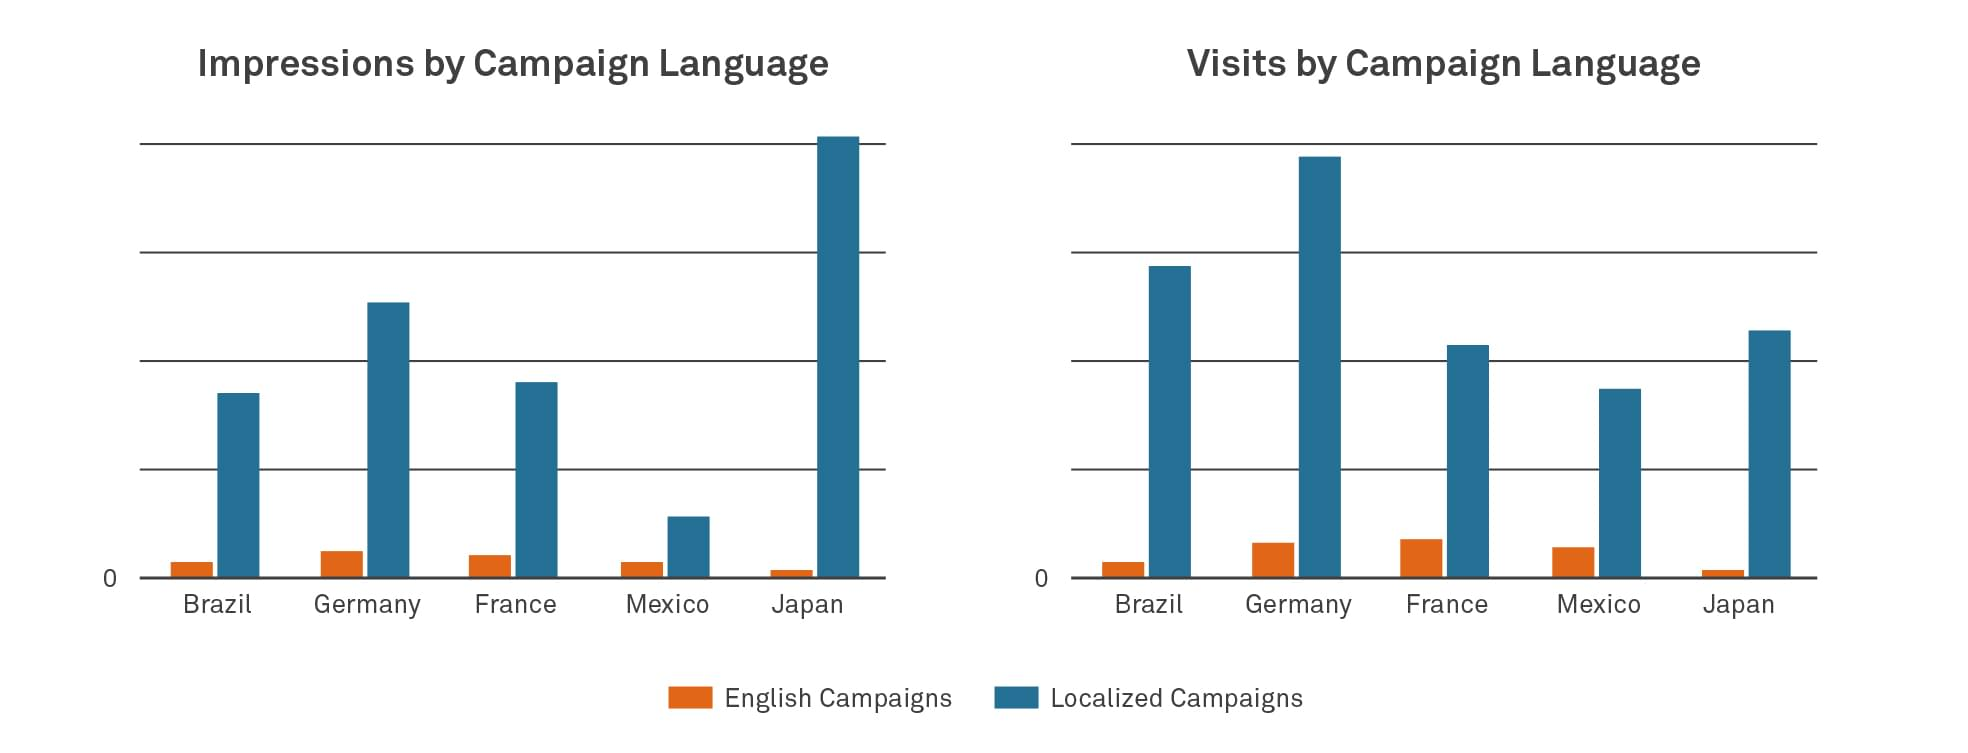 Impressions by campaign language